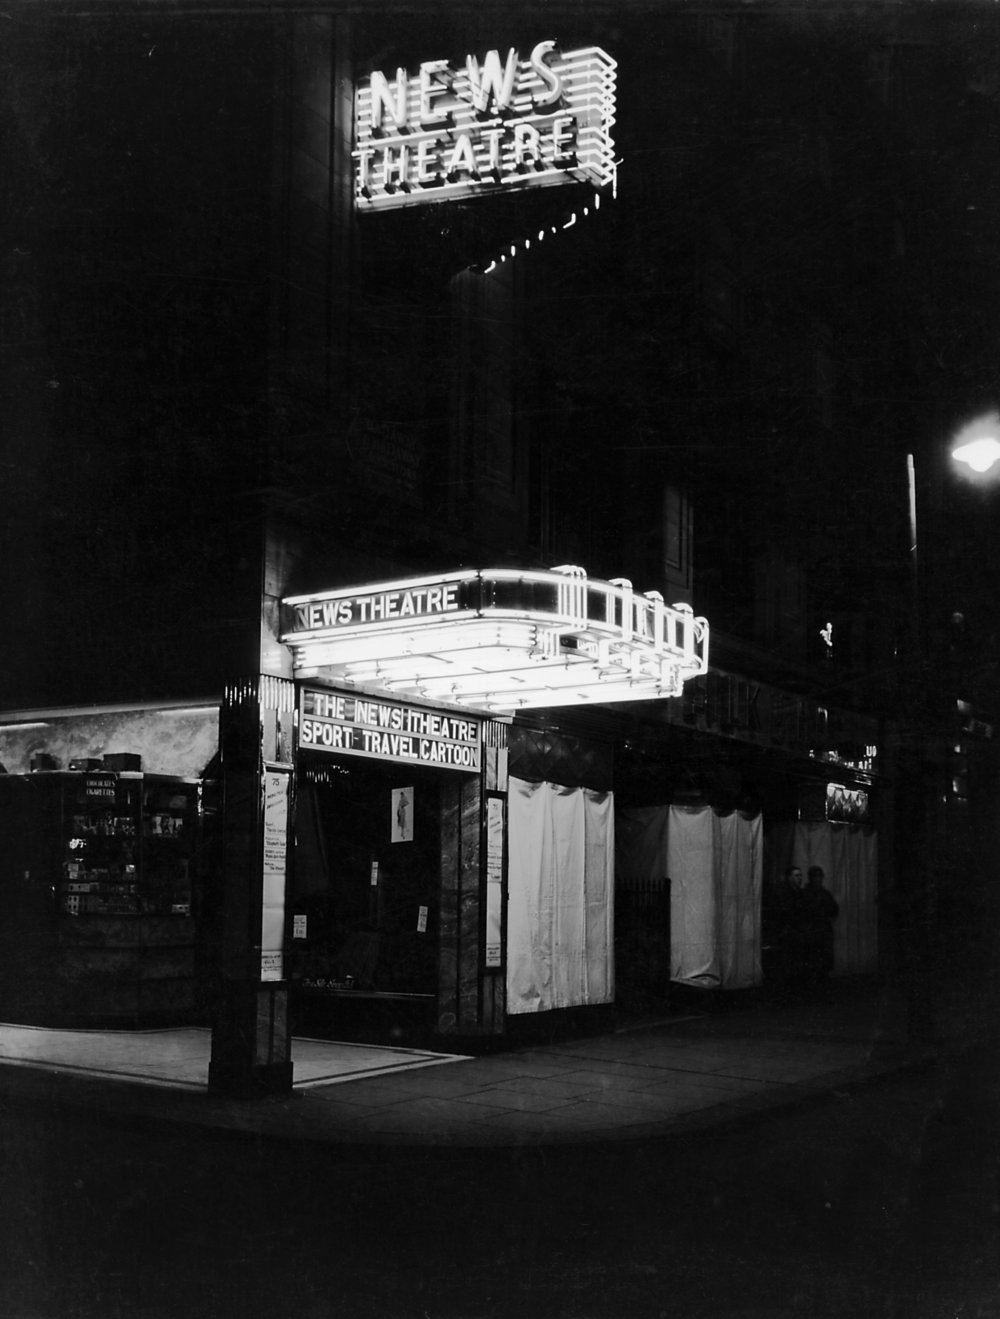 News Theatre (now Tyneside Cinema), Newcastle, 1938